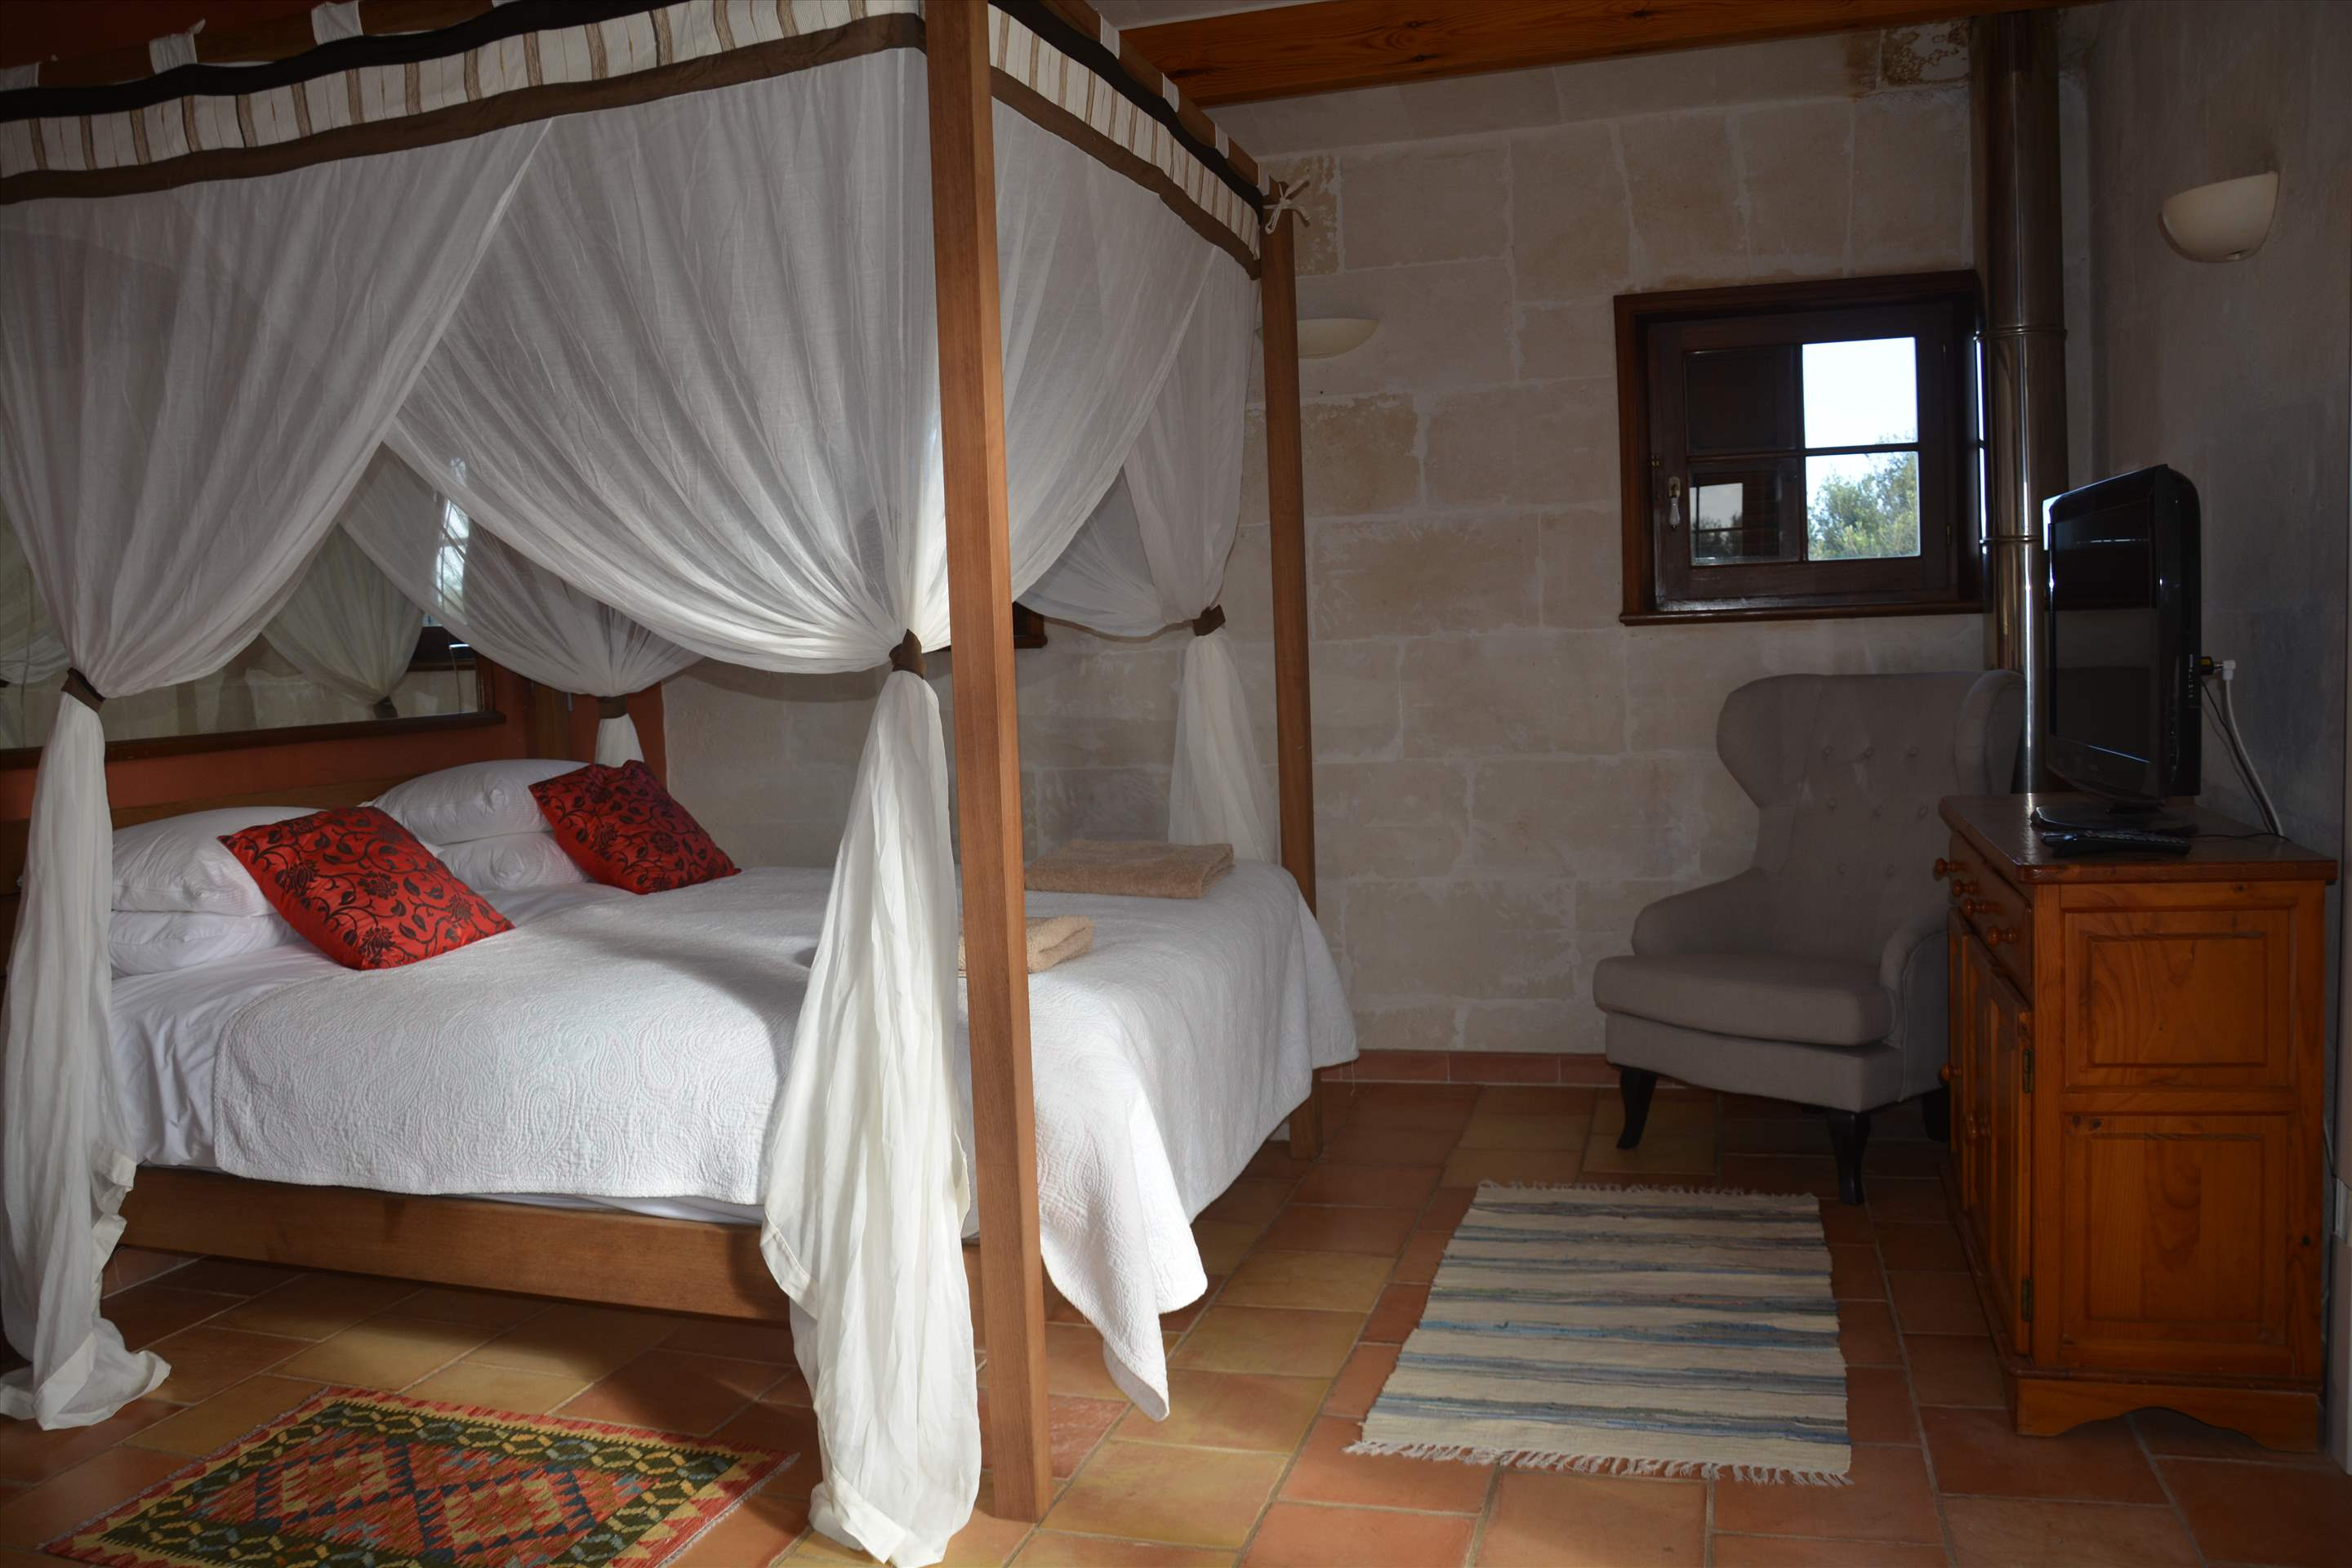 Les Arcs, 5 bedroom villa in Mahon, San Luis & South East, Menorca Photo #25